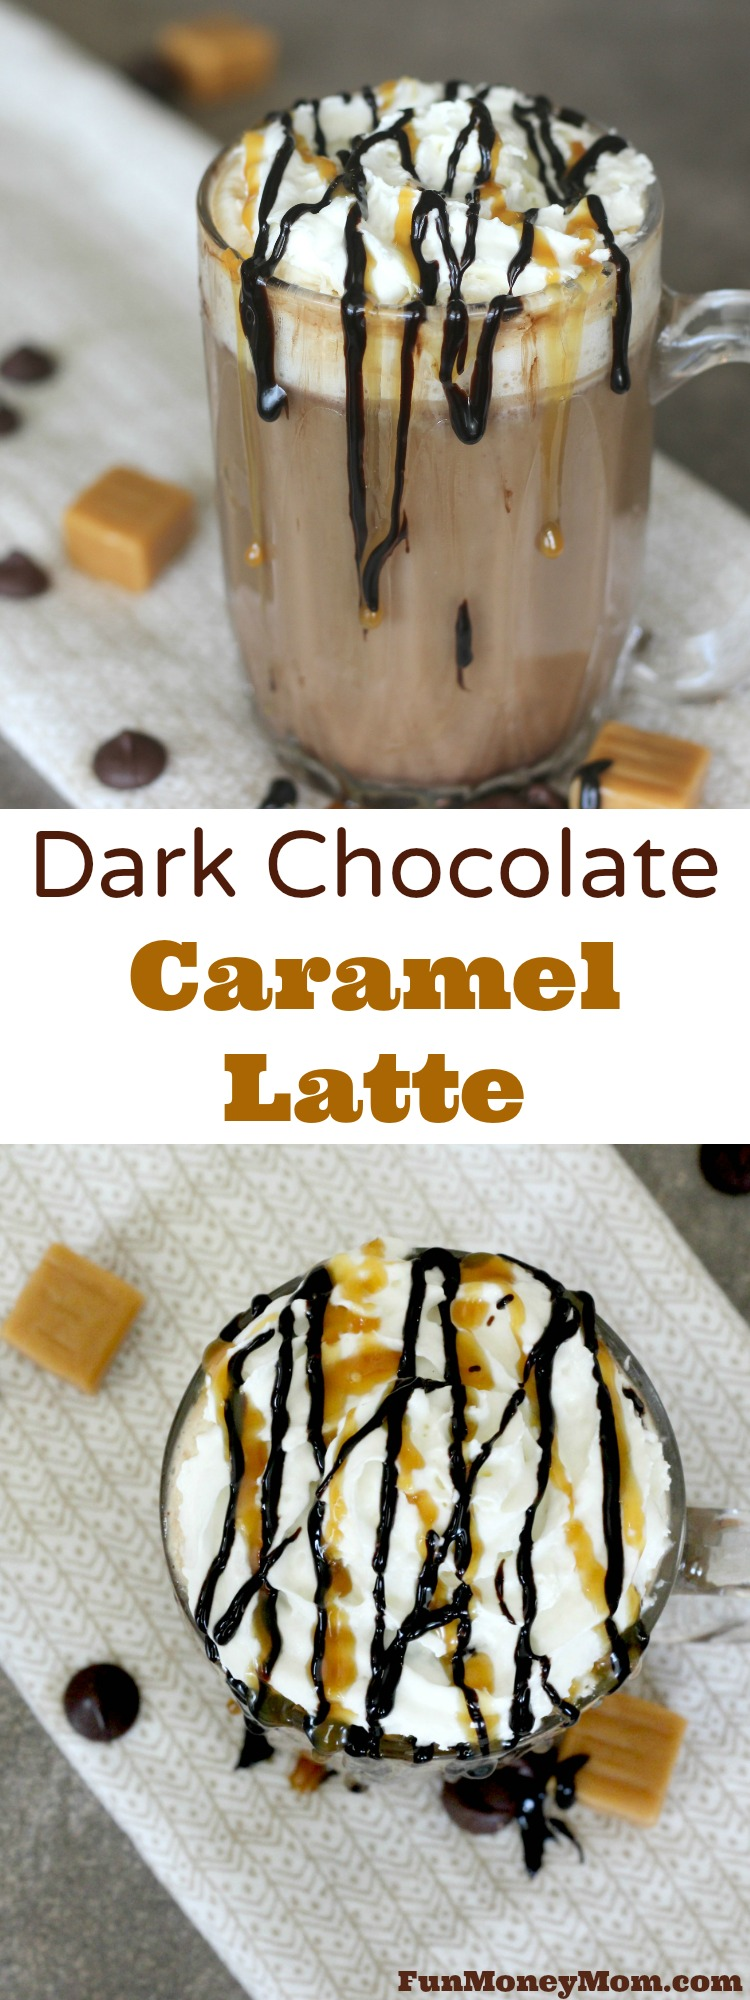 Do you have a hard time waking up in the morning? This delicious Dark Chocolate Caramel Latte coffee drink will make it a lot easier! #CoffeehouseBlend #ad